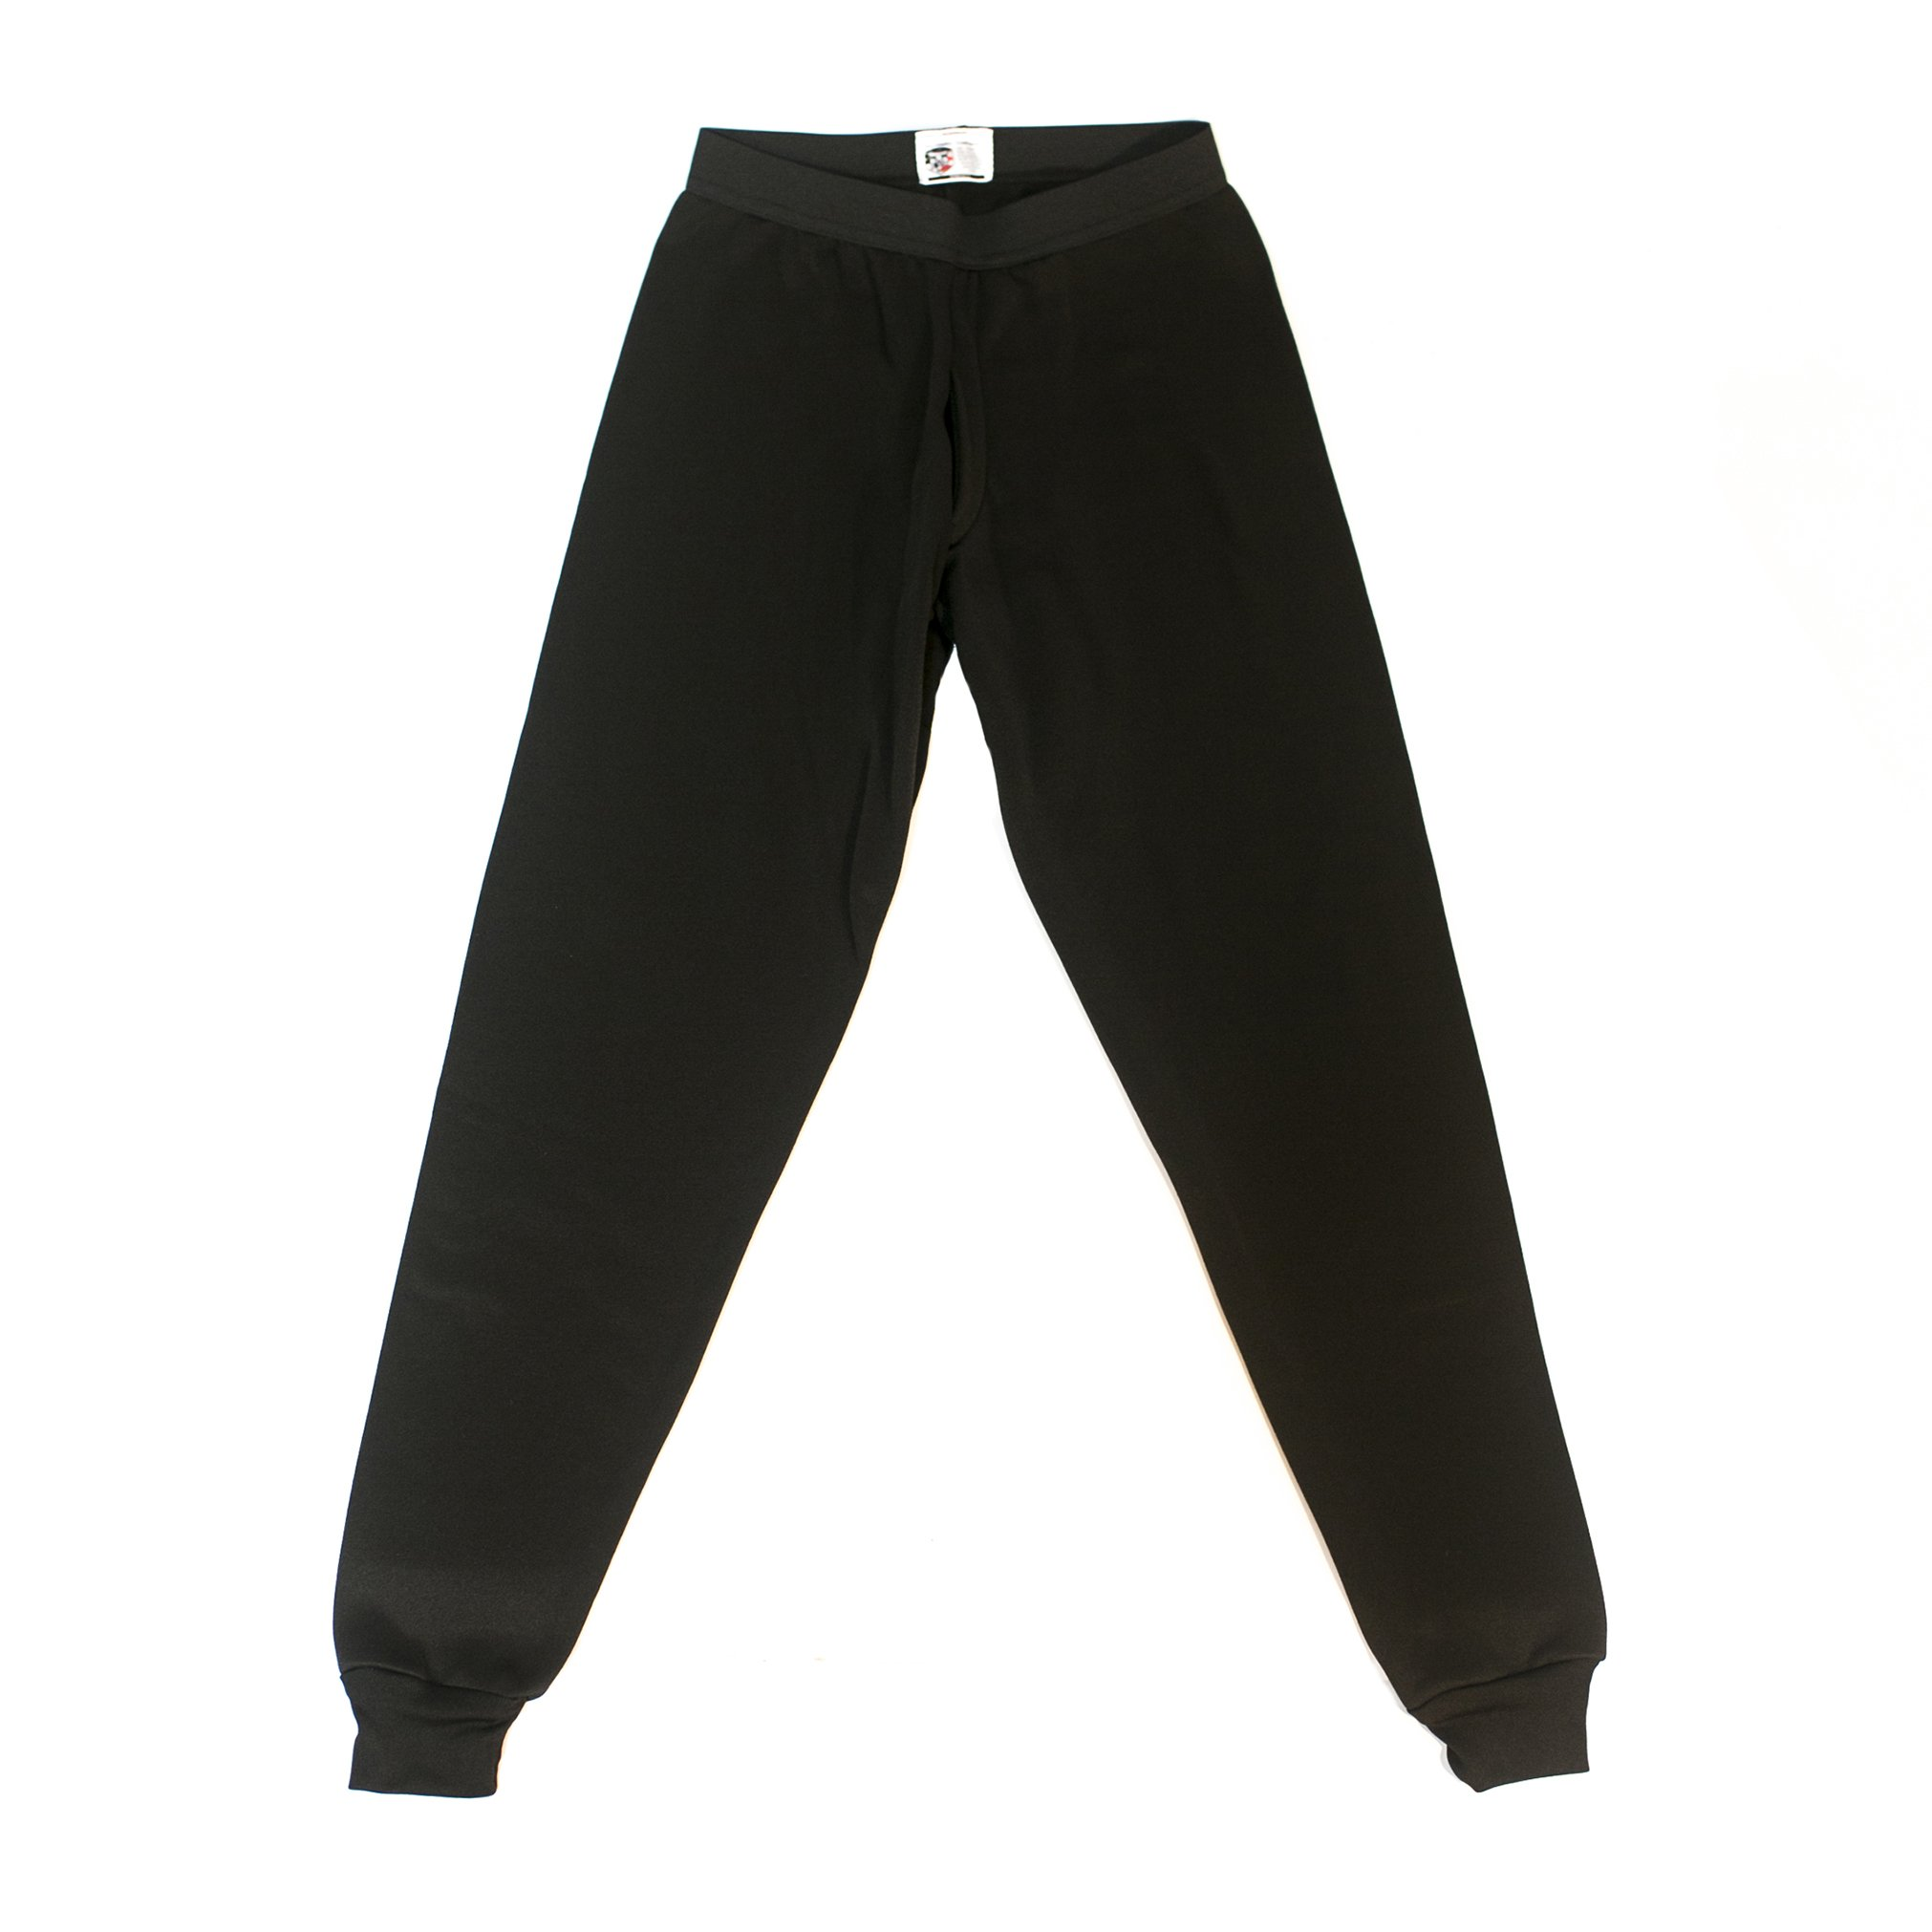 Military Thermals Polypropylene Thermal Pants